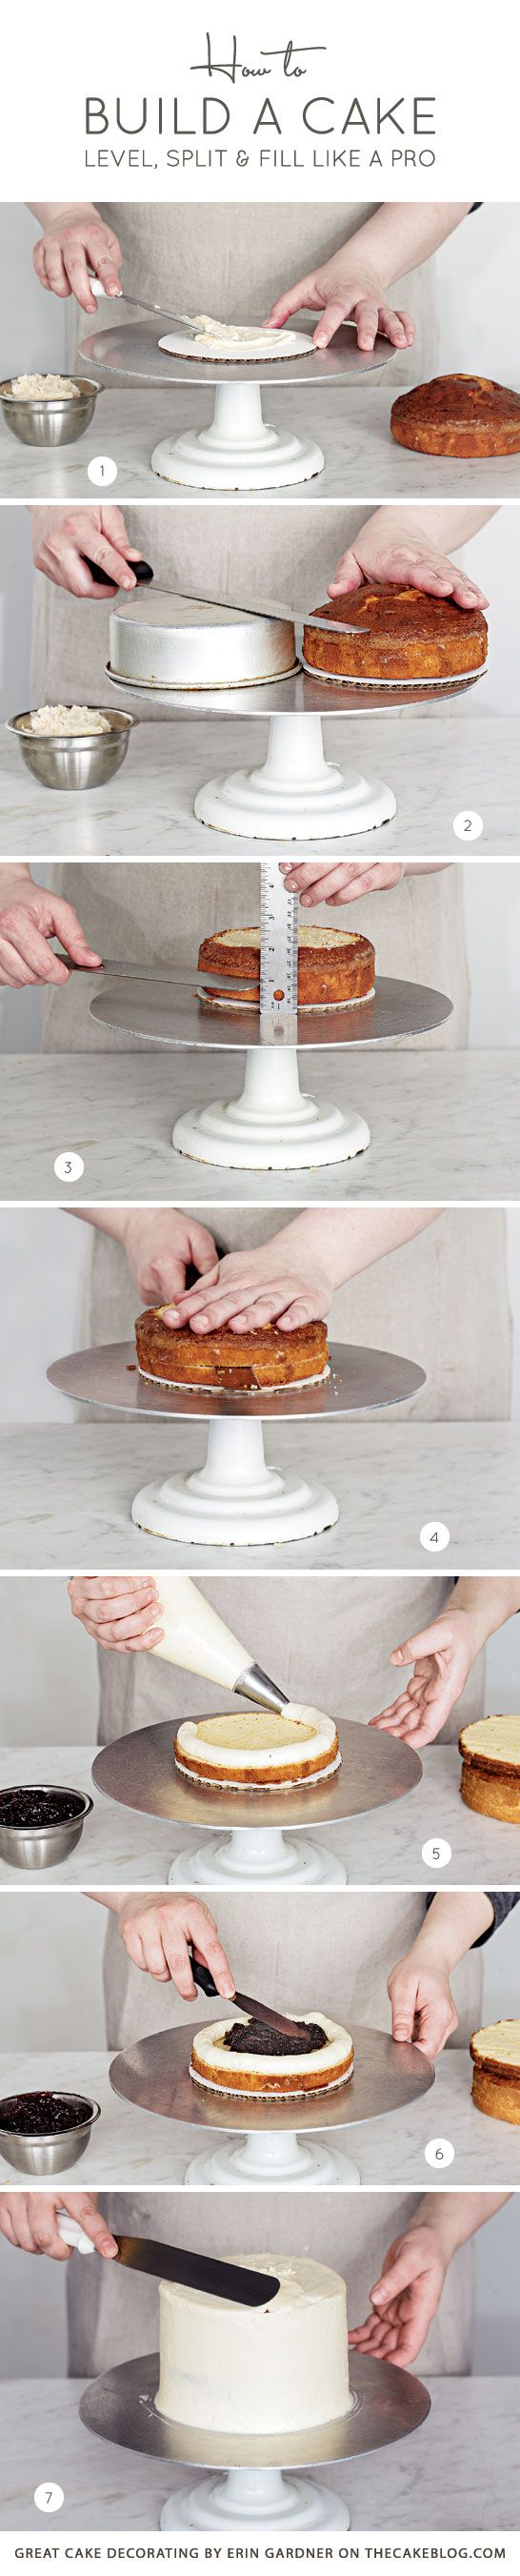 How To Build a Cake Like a Pro